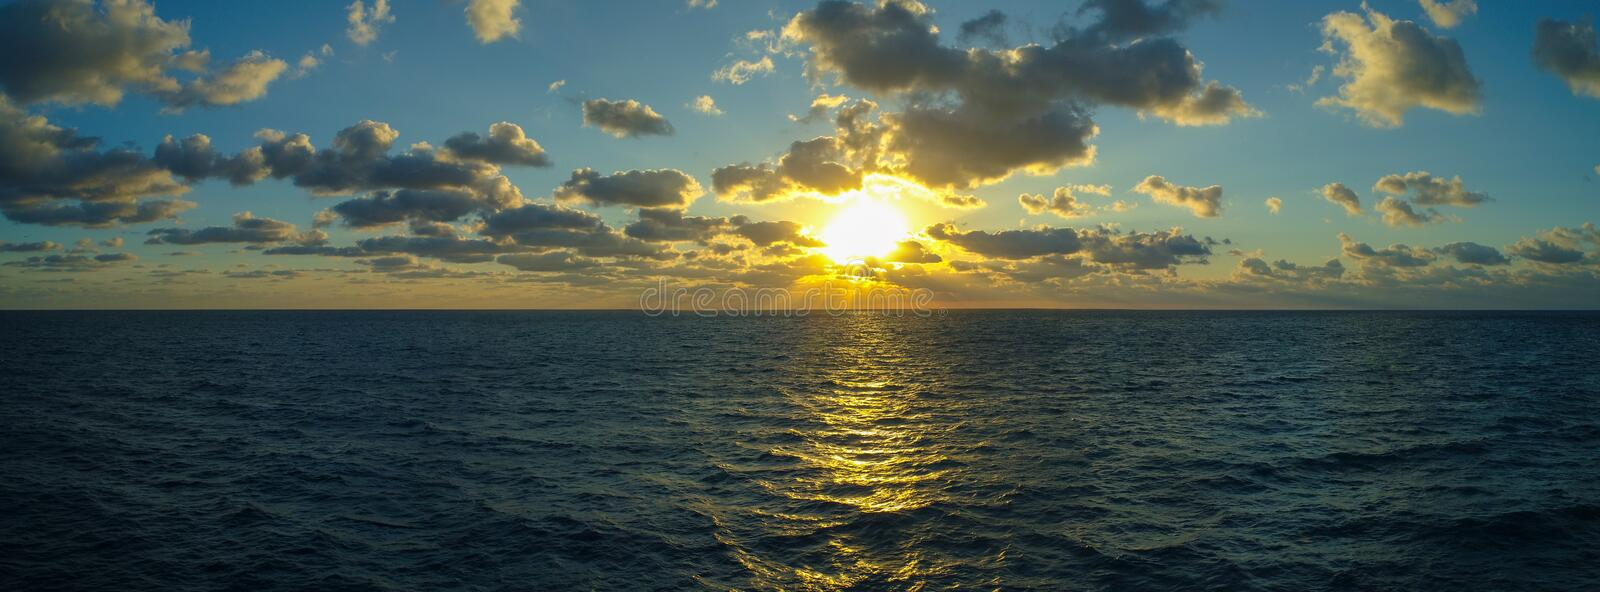 Aerial panorama amasing sunrise or sunset over ocean stock images